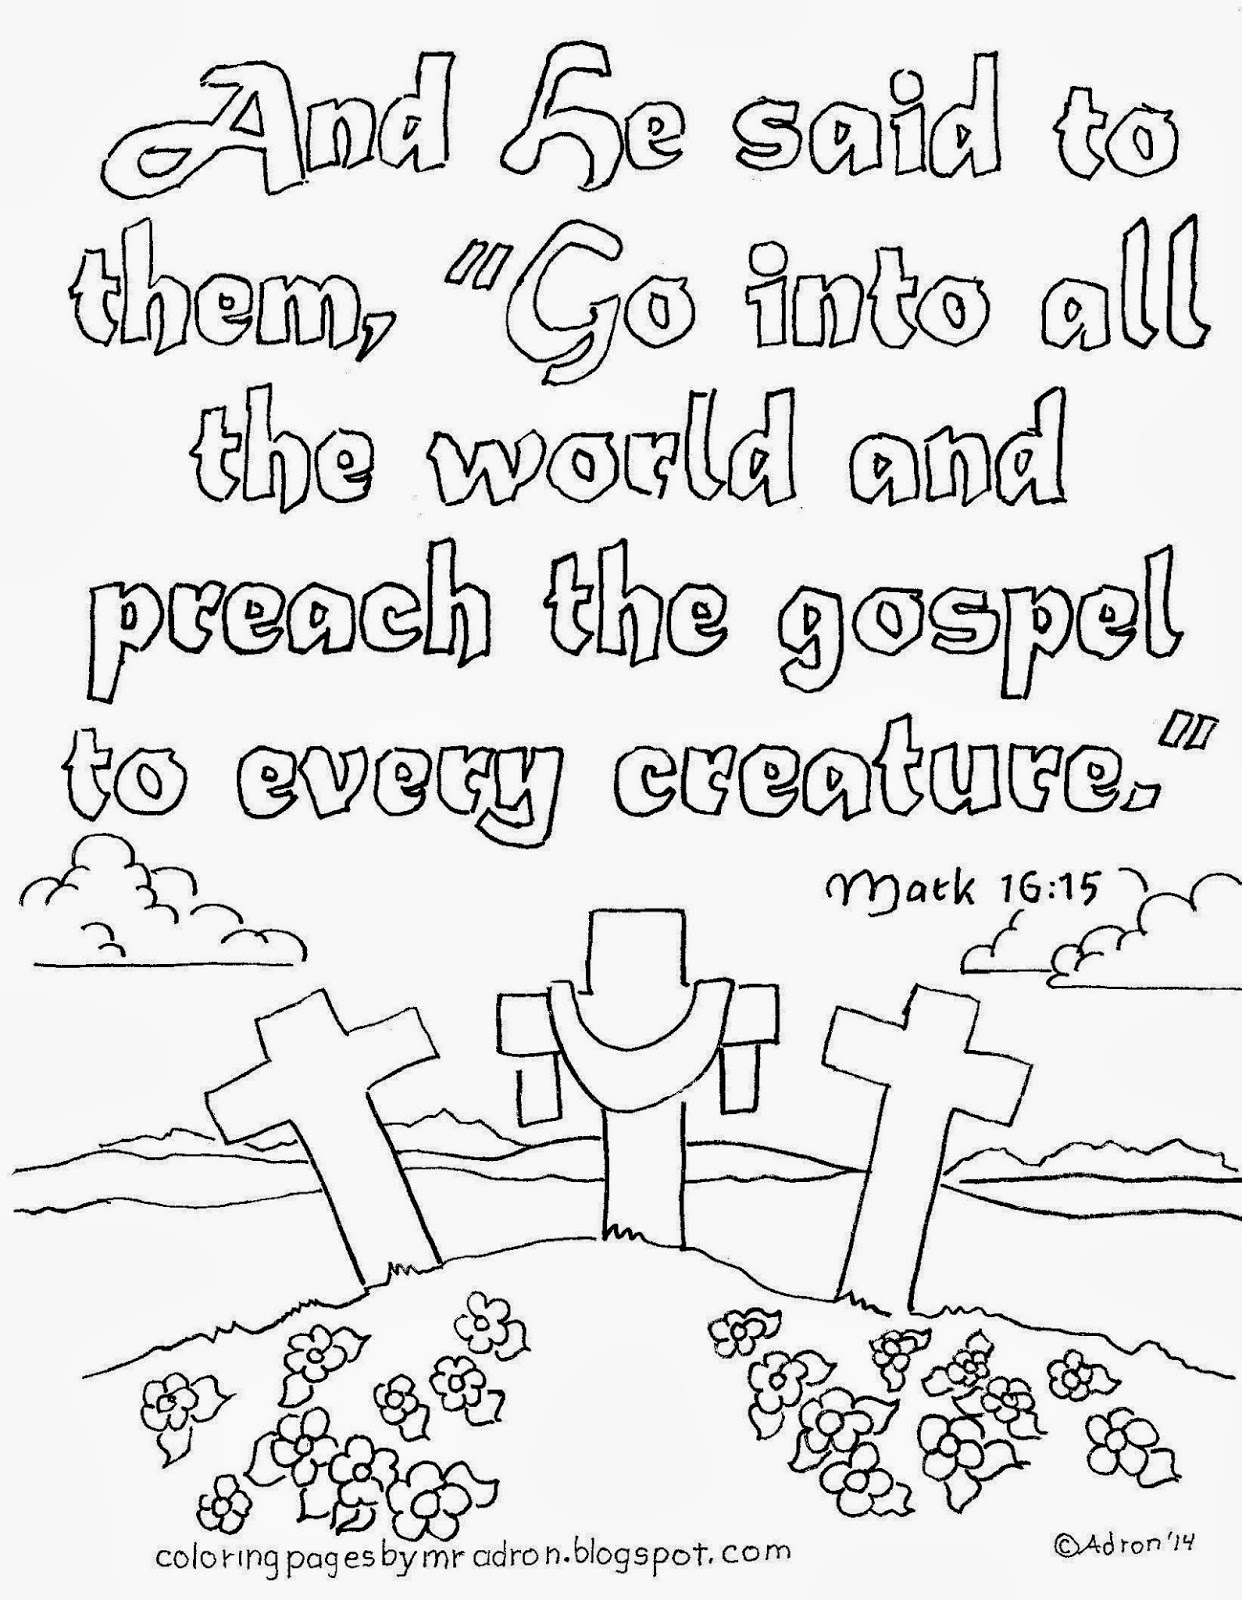 An illustration for Mark 16:15 to print and color.